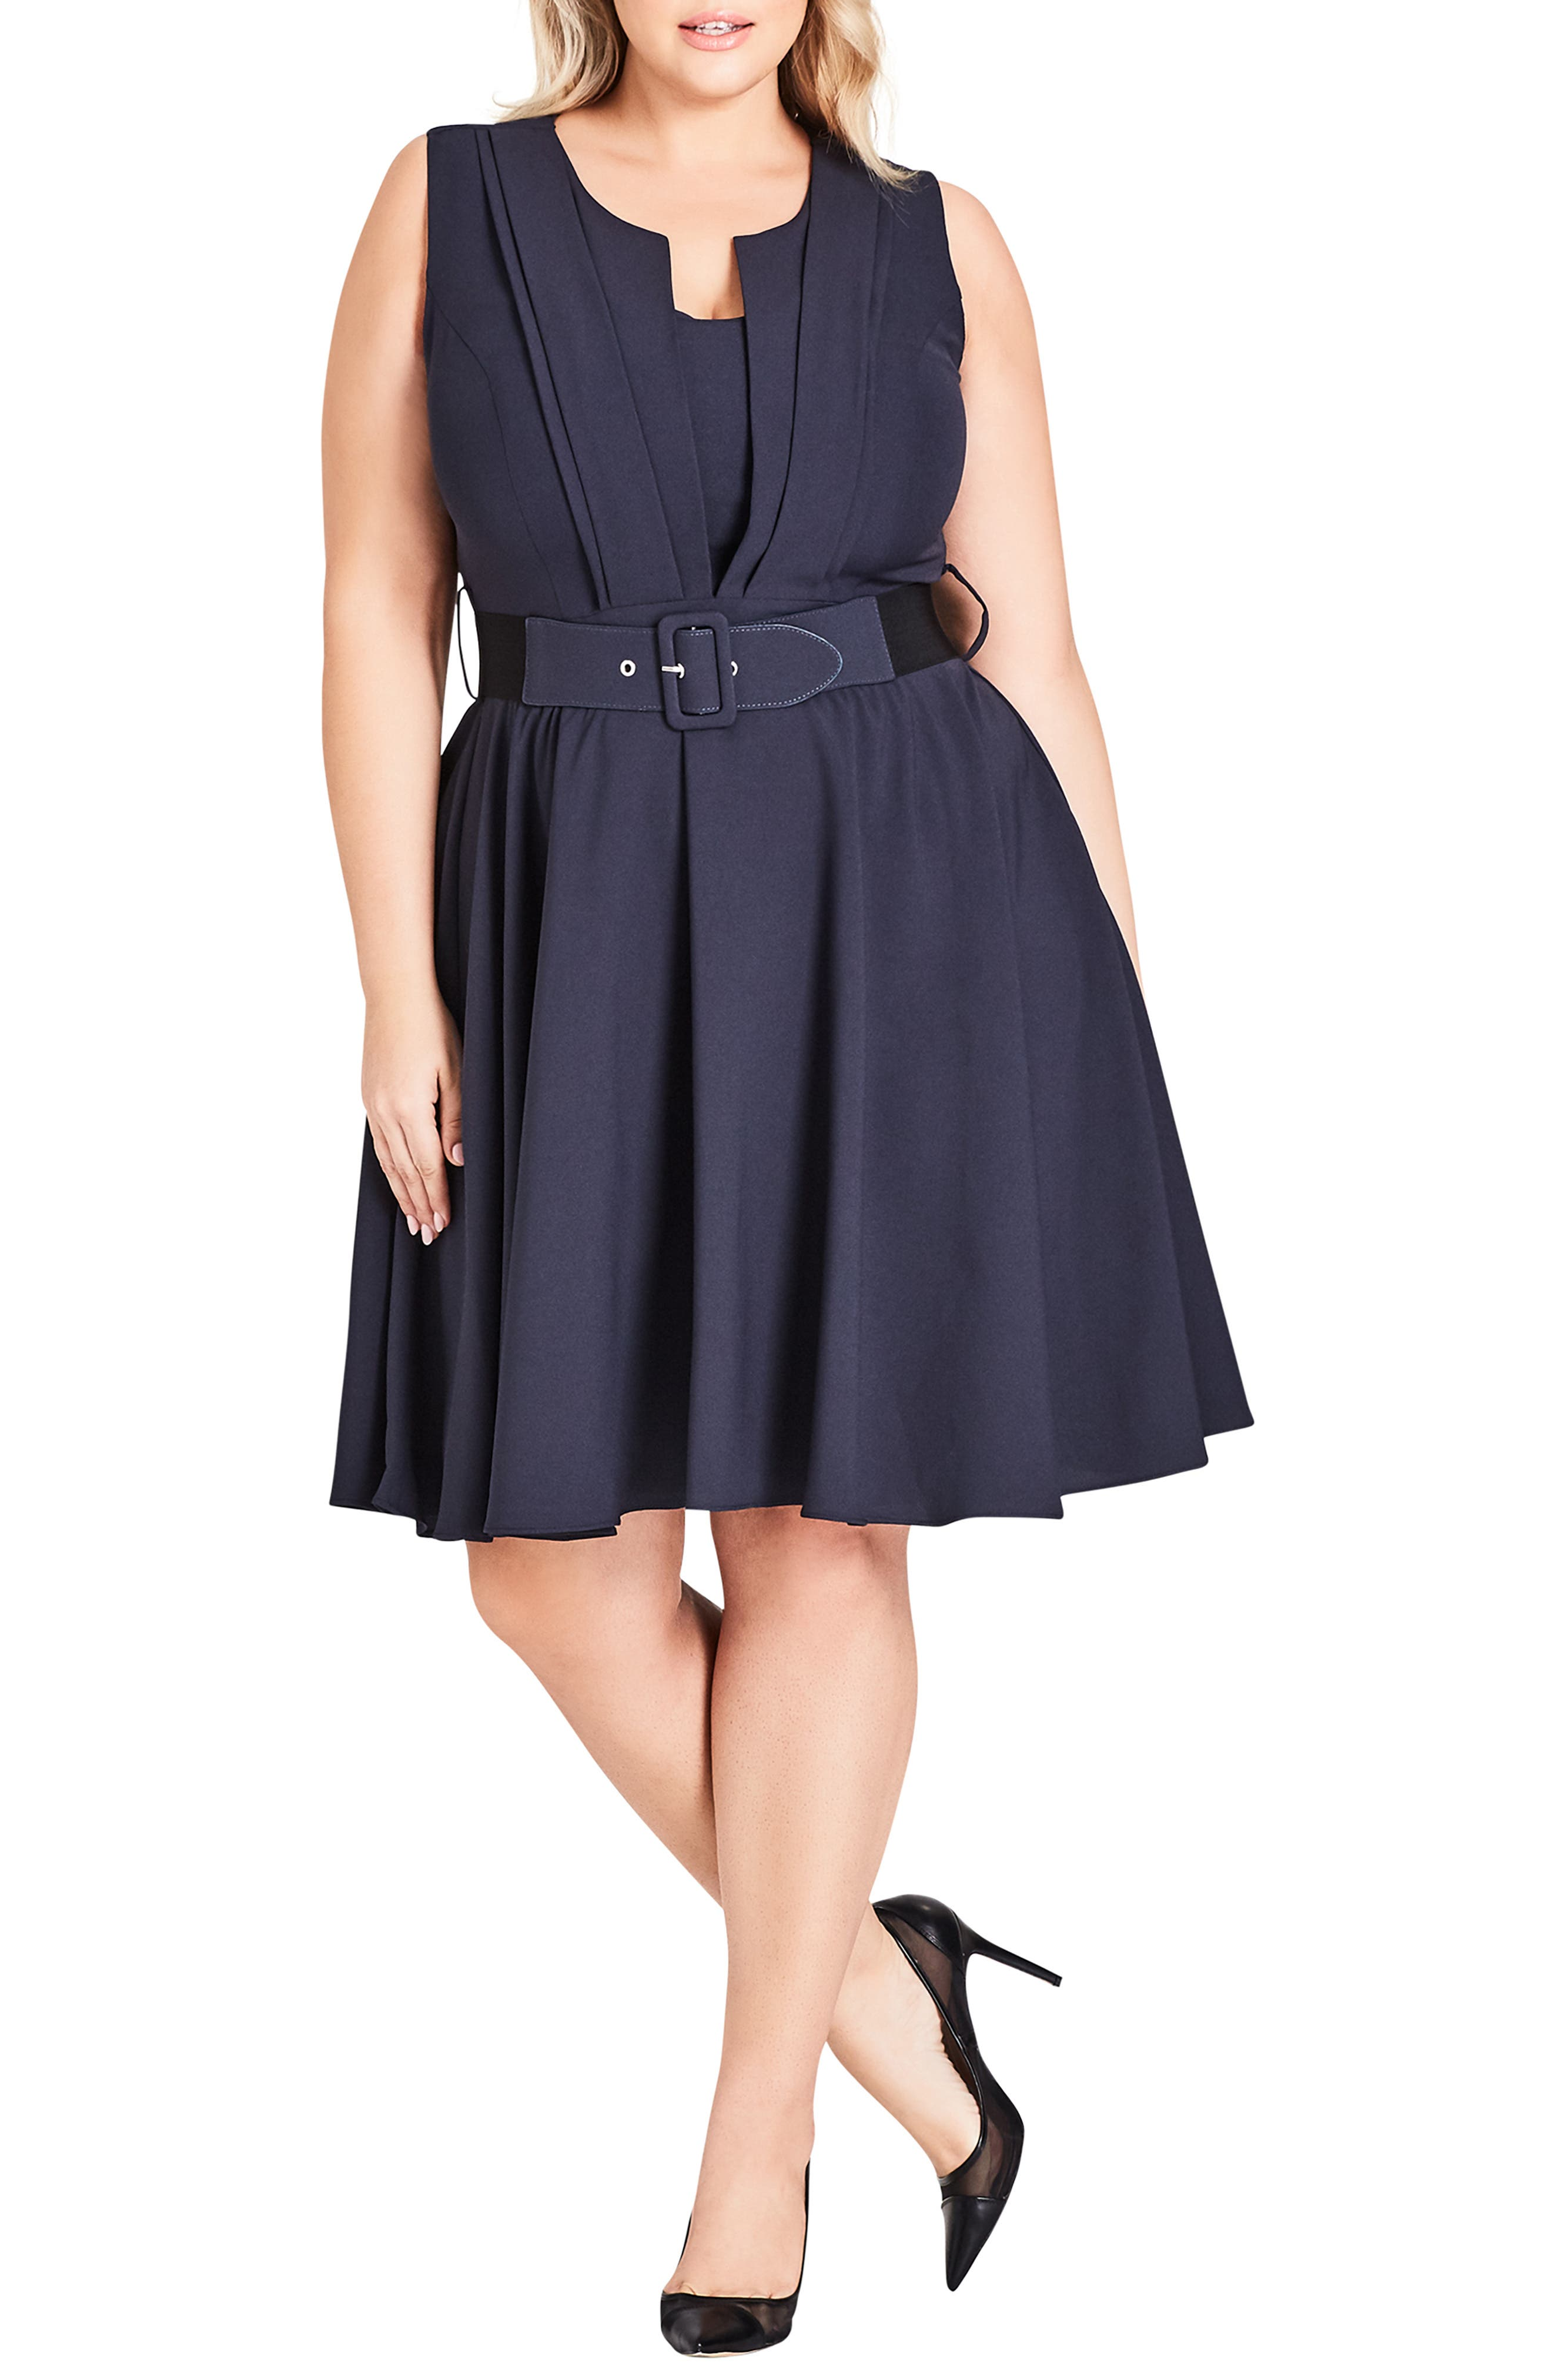 Vintage Veronica Belted Pleat Fit & Flare Dress,                             Main thumbnail 1, color,                             SMOKE